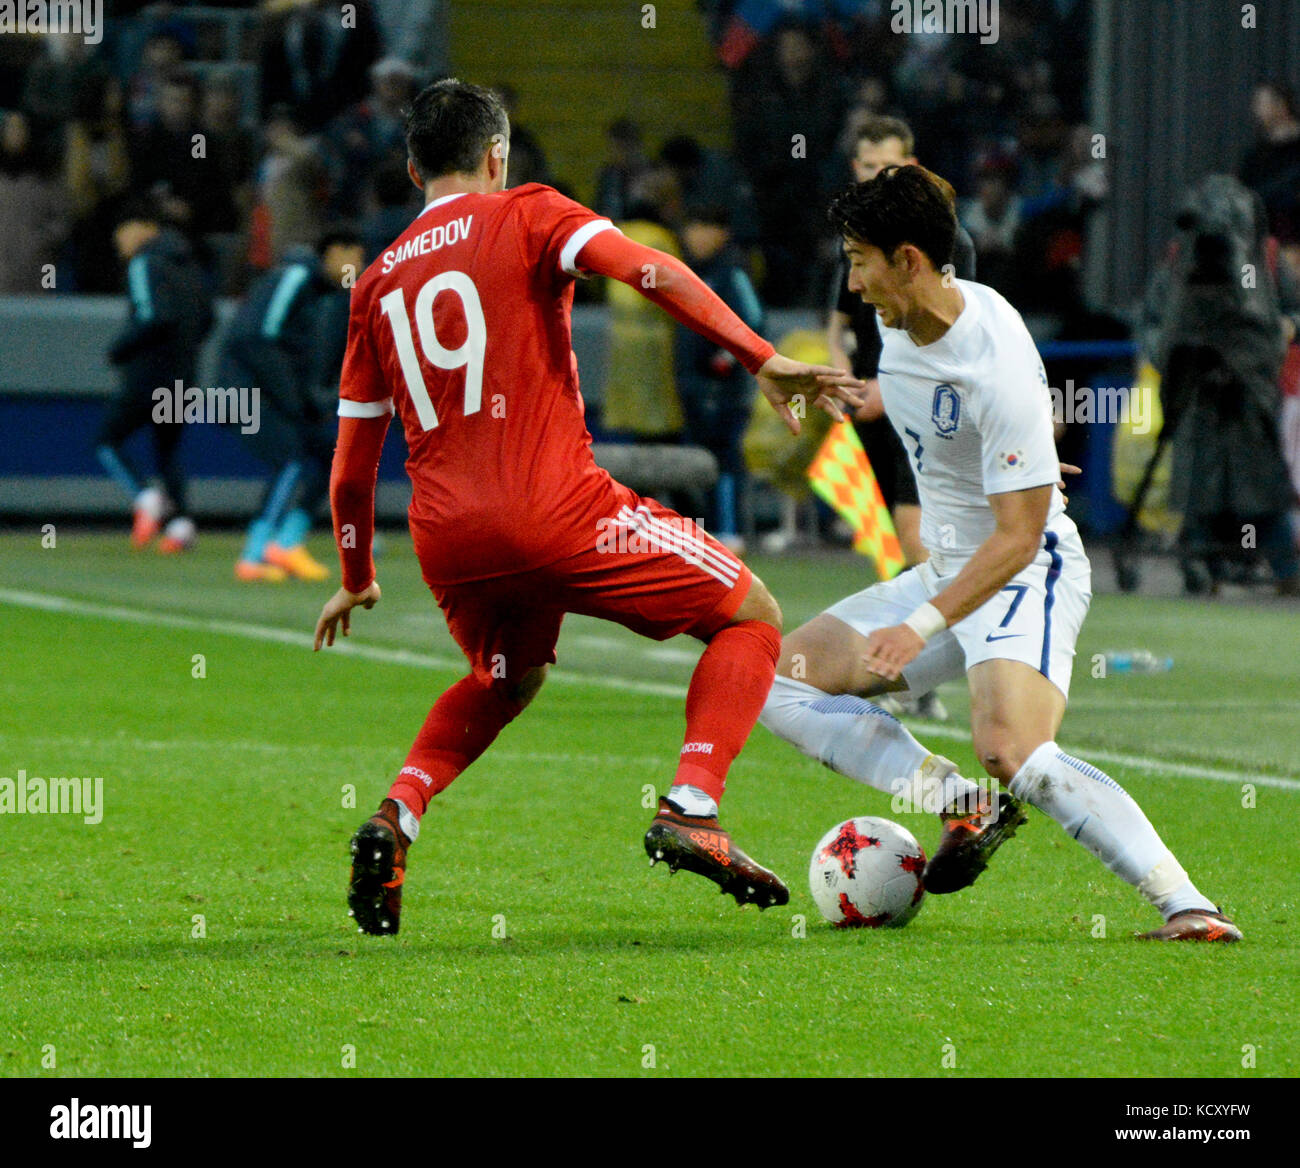 677ba126ec29 Moscow, Russia - October 7, 2017. Russian midfielder Aleksandr Samedov and  South Korean